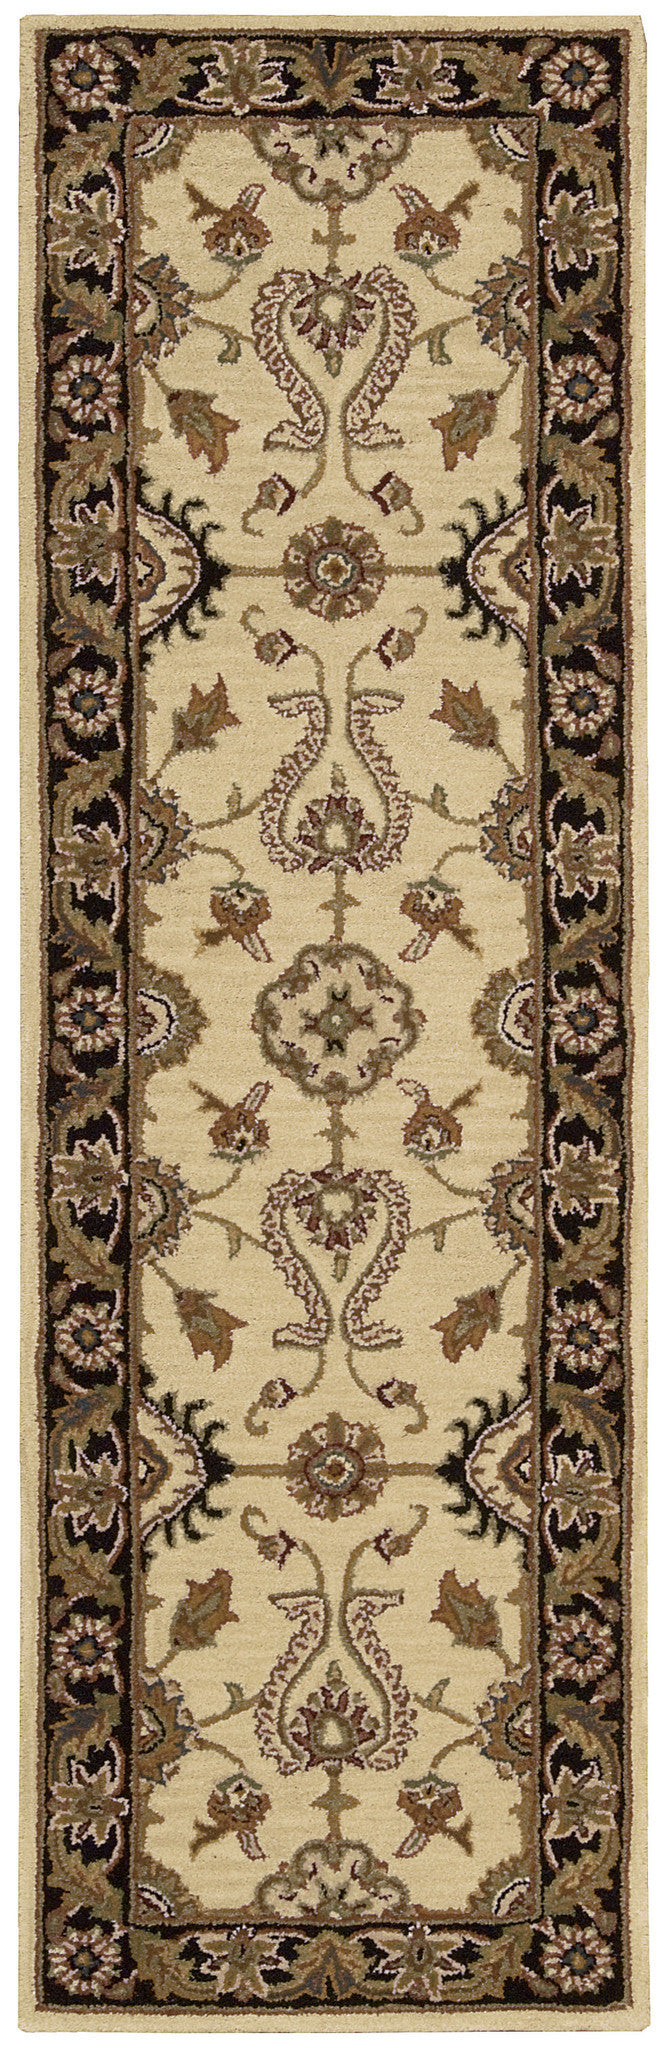 Nourison India House Beige Area Rug IH60 BGE